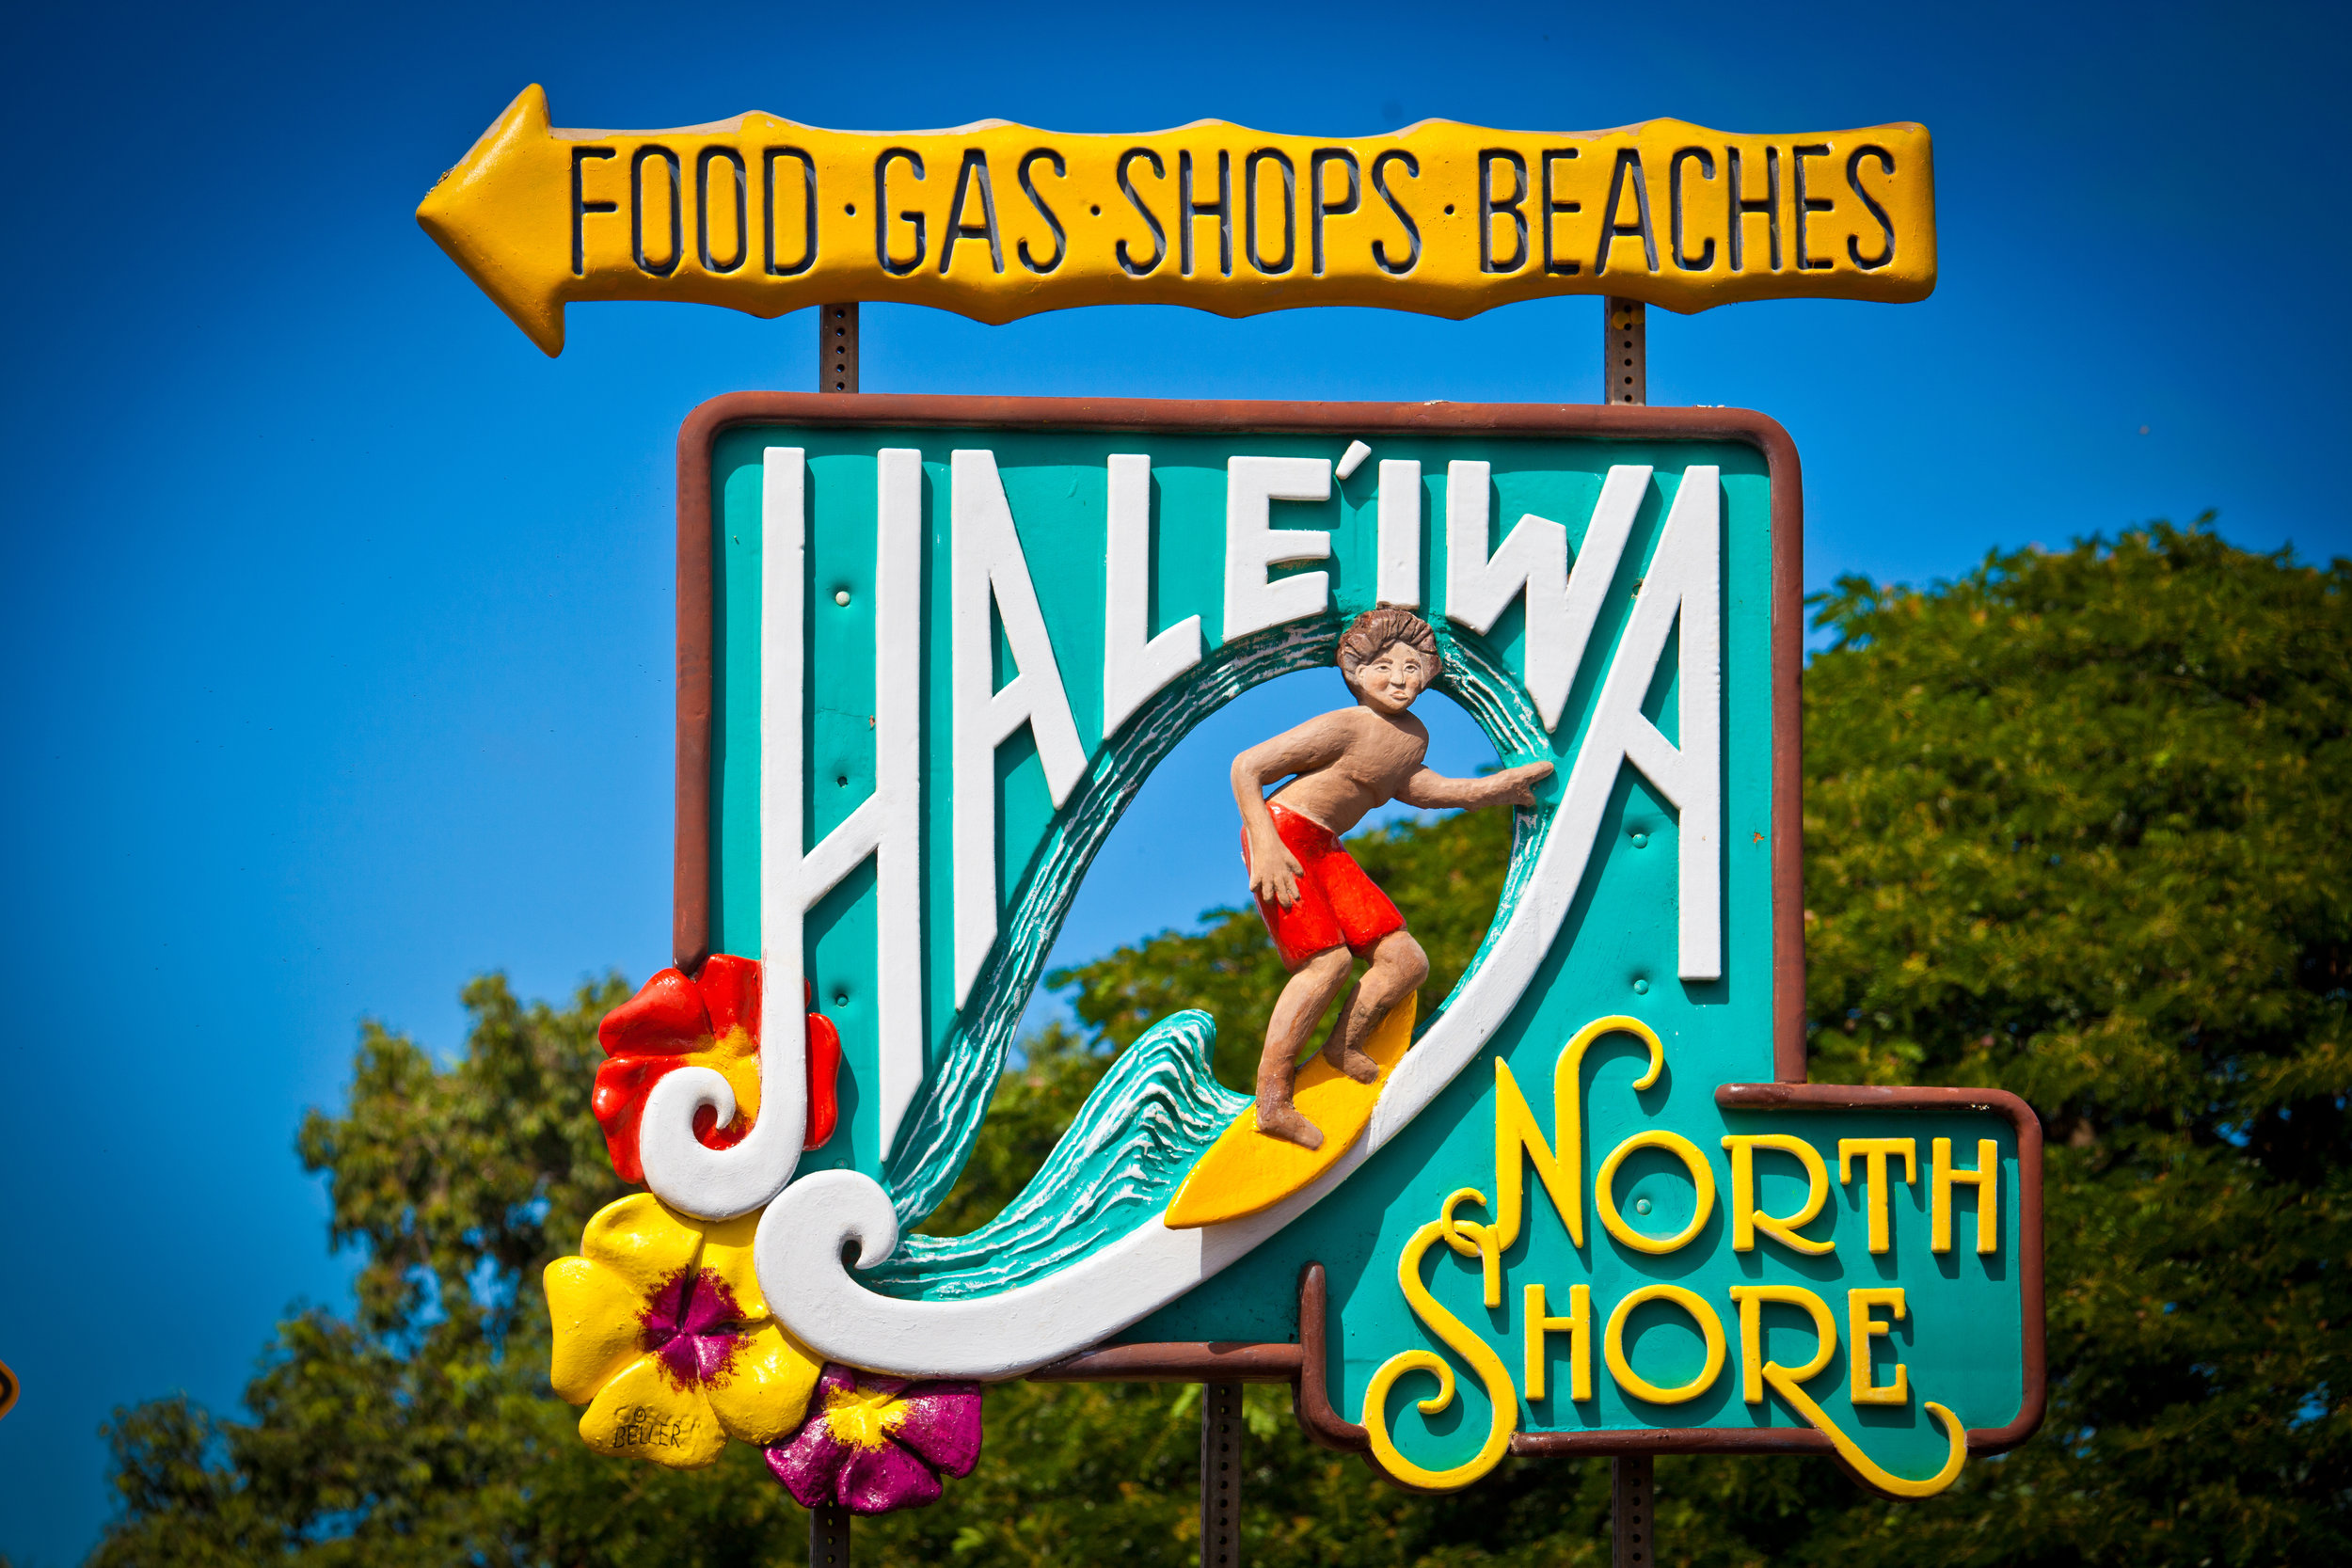 Haleiwa-North Shore.jpeg